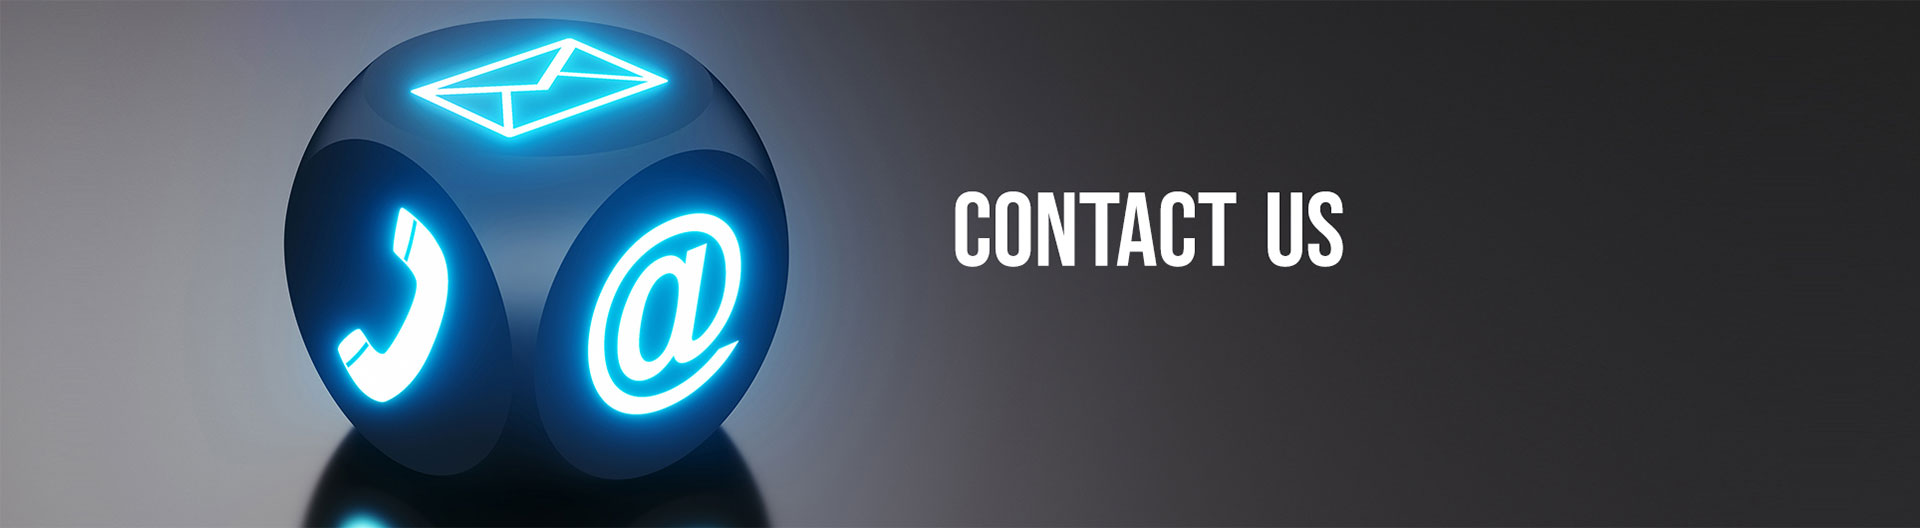 contact us banner with blue dice